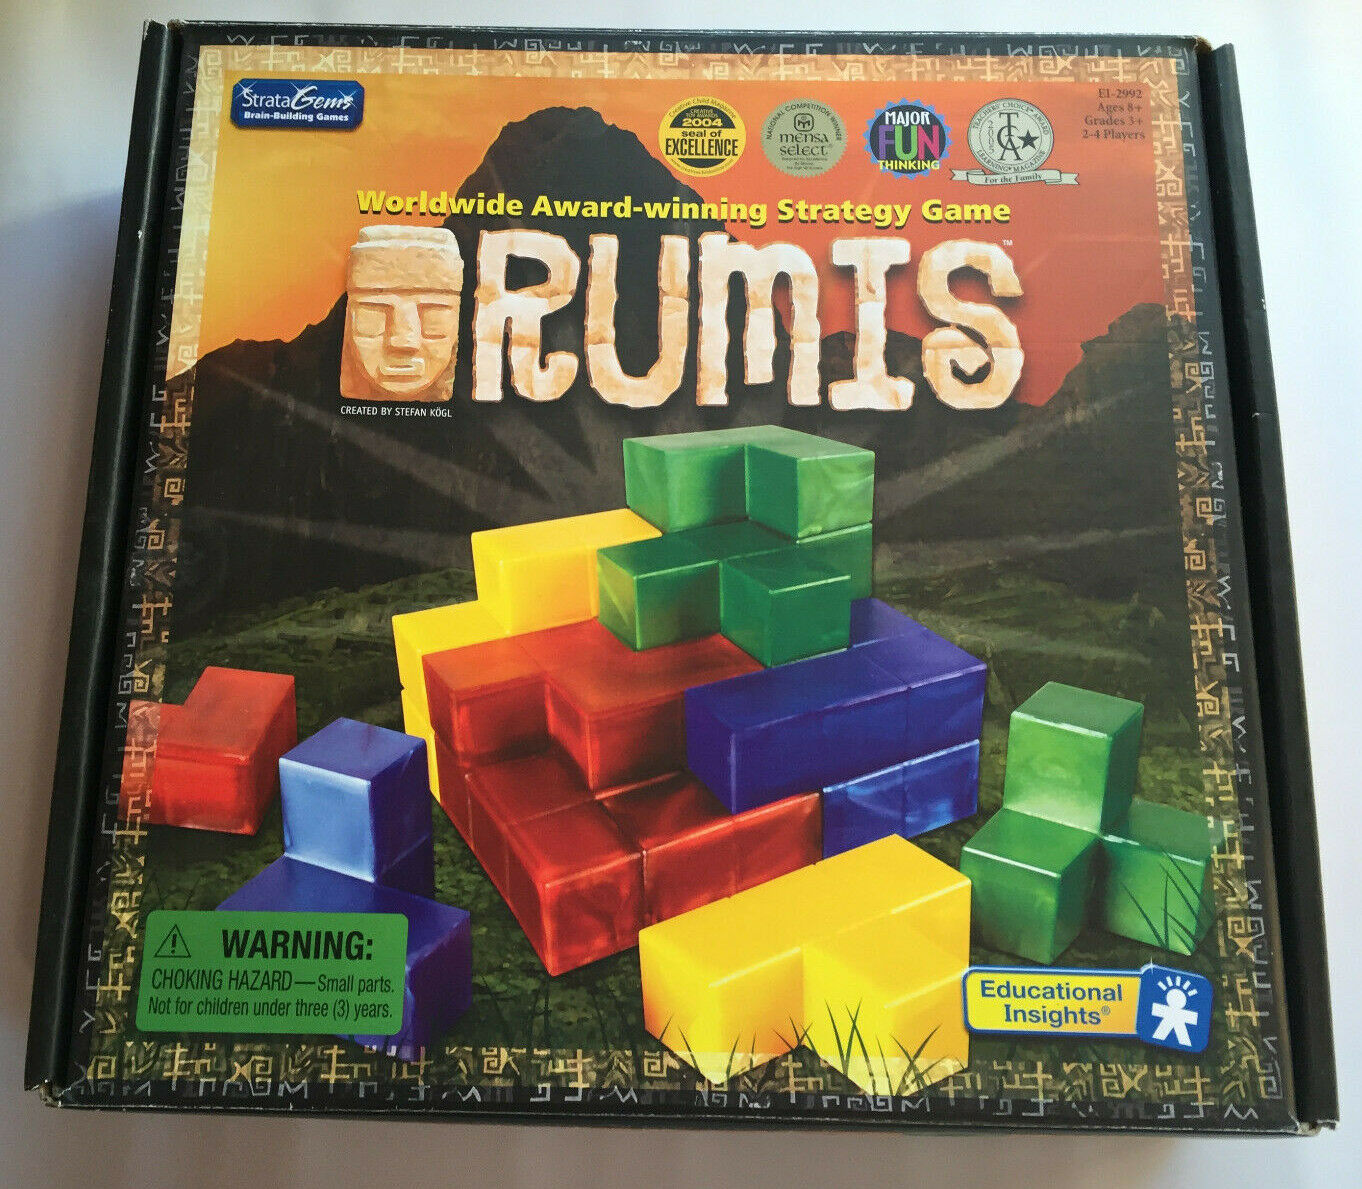 RUMIS strategy game 2 to 4 players StrataGems Educational Insights 3D pieces